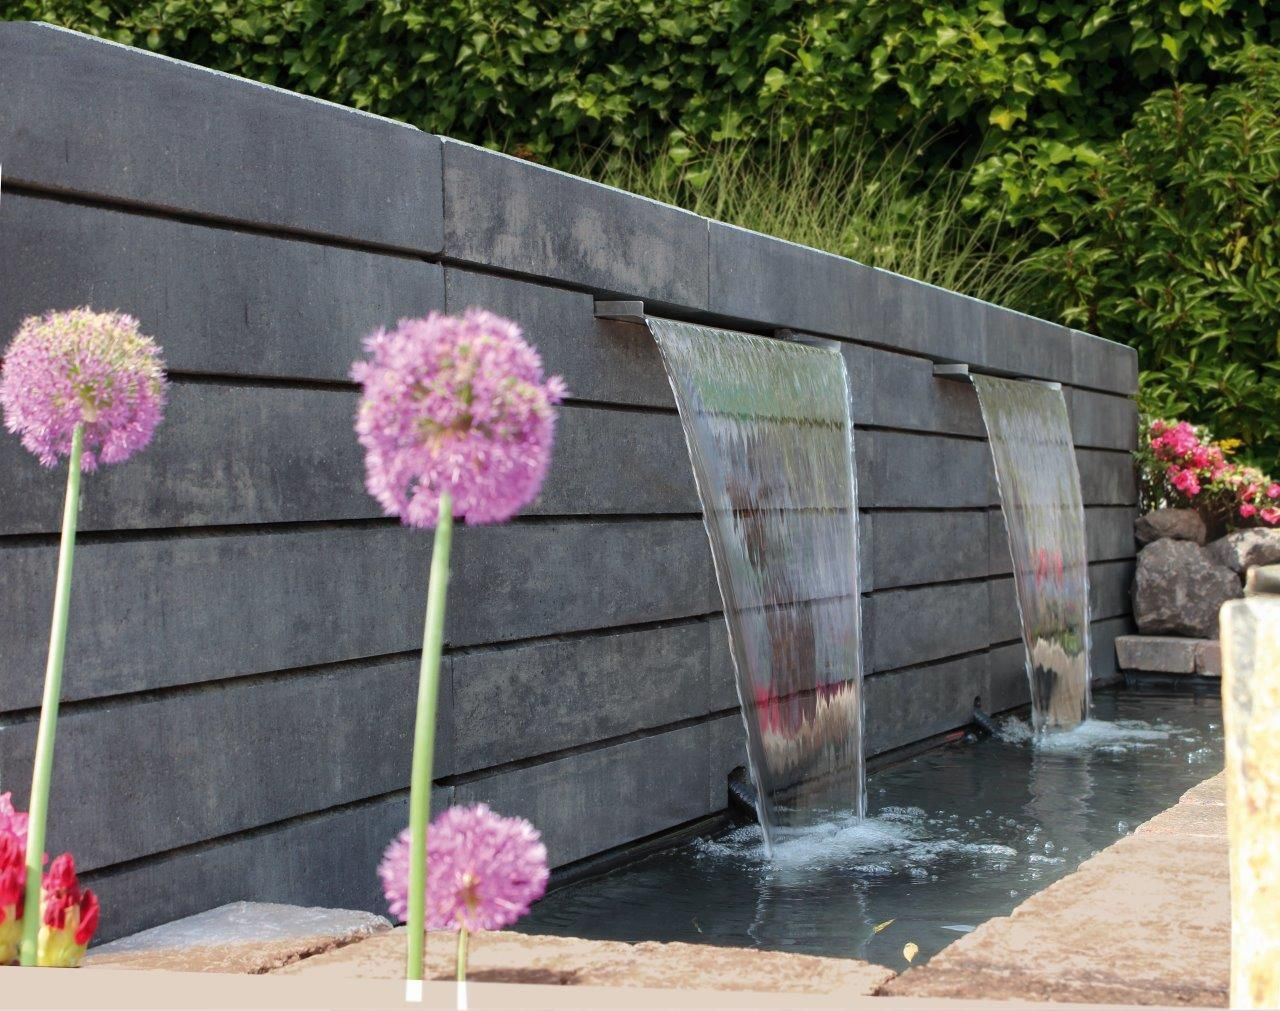 lineo mauerstein wasserfall diy beton garten gartenbrunnen mauern pinterest. Black Bedroom Furniture Sets. Home Design Ideas